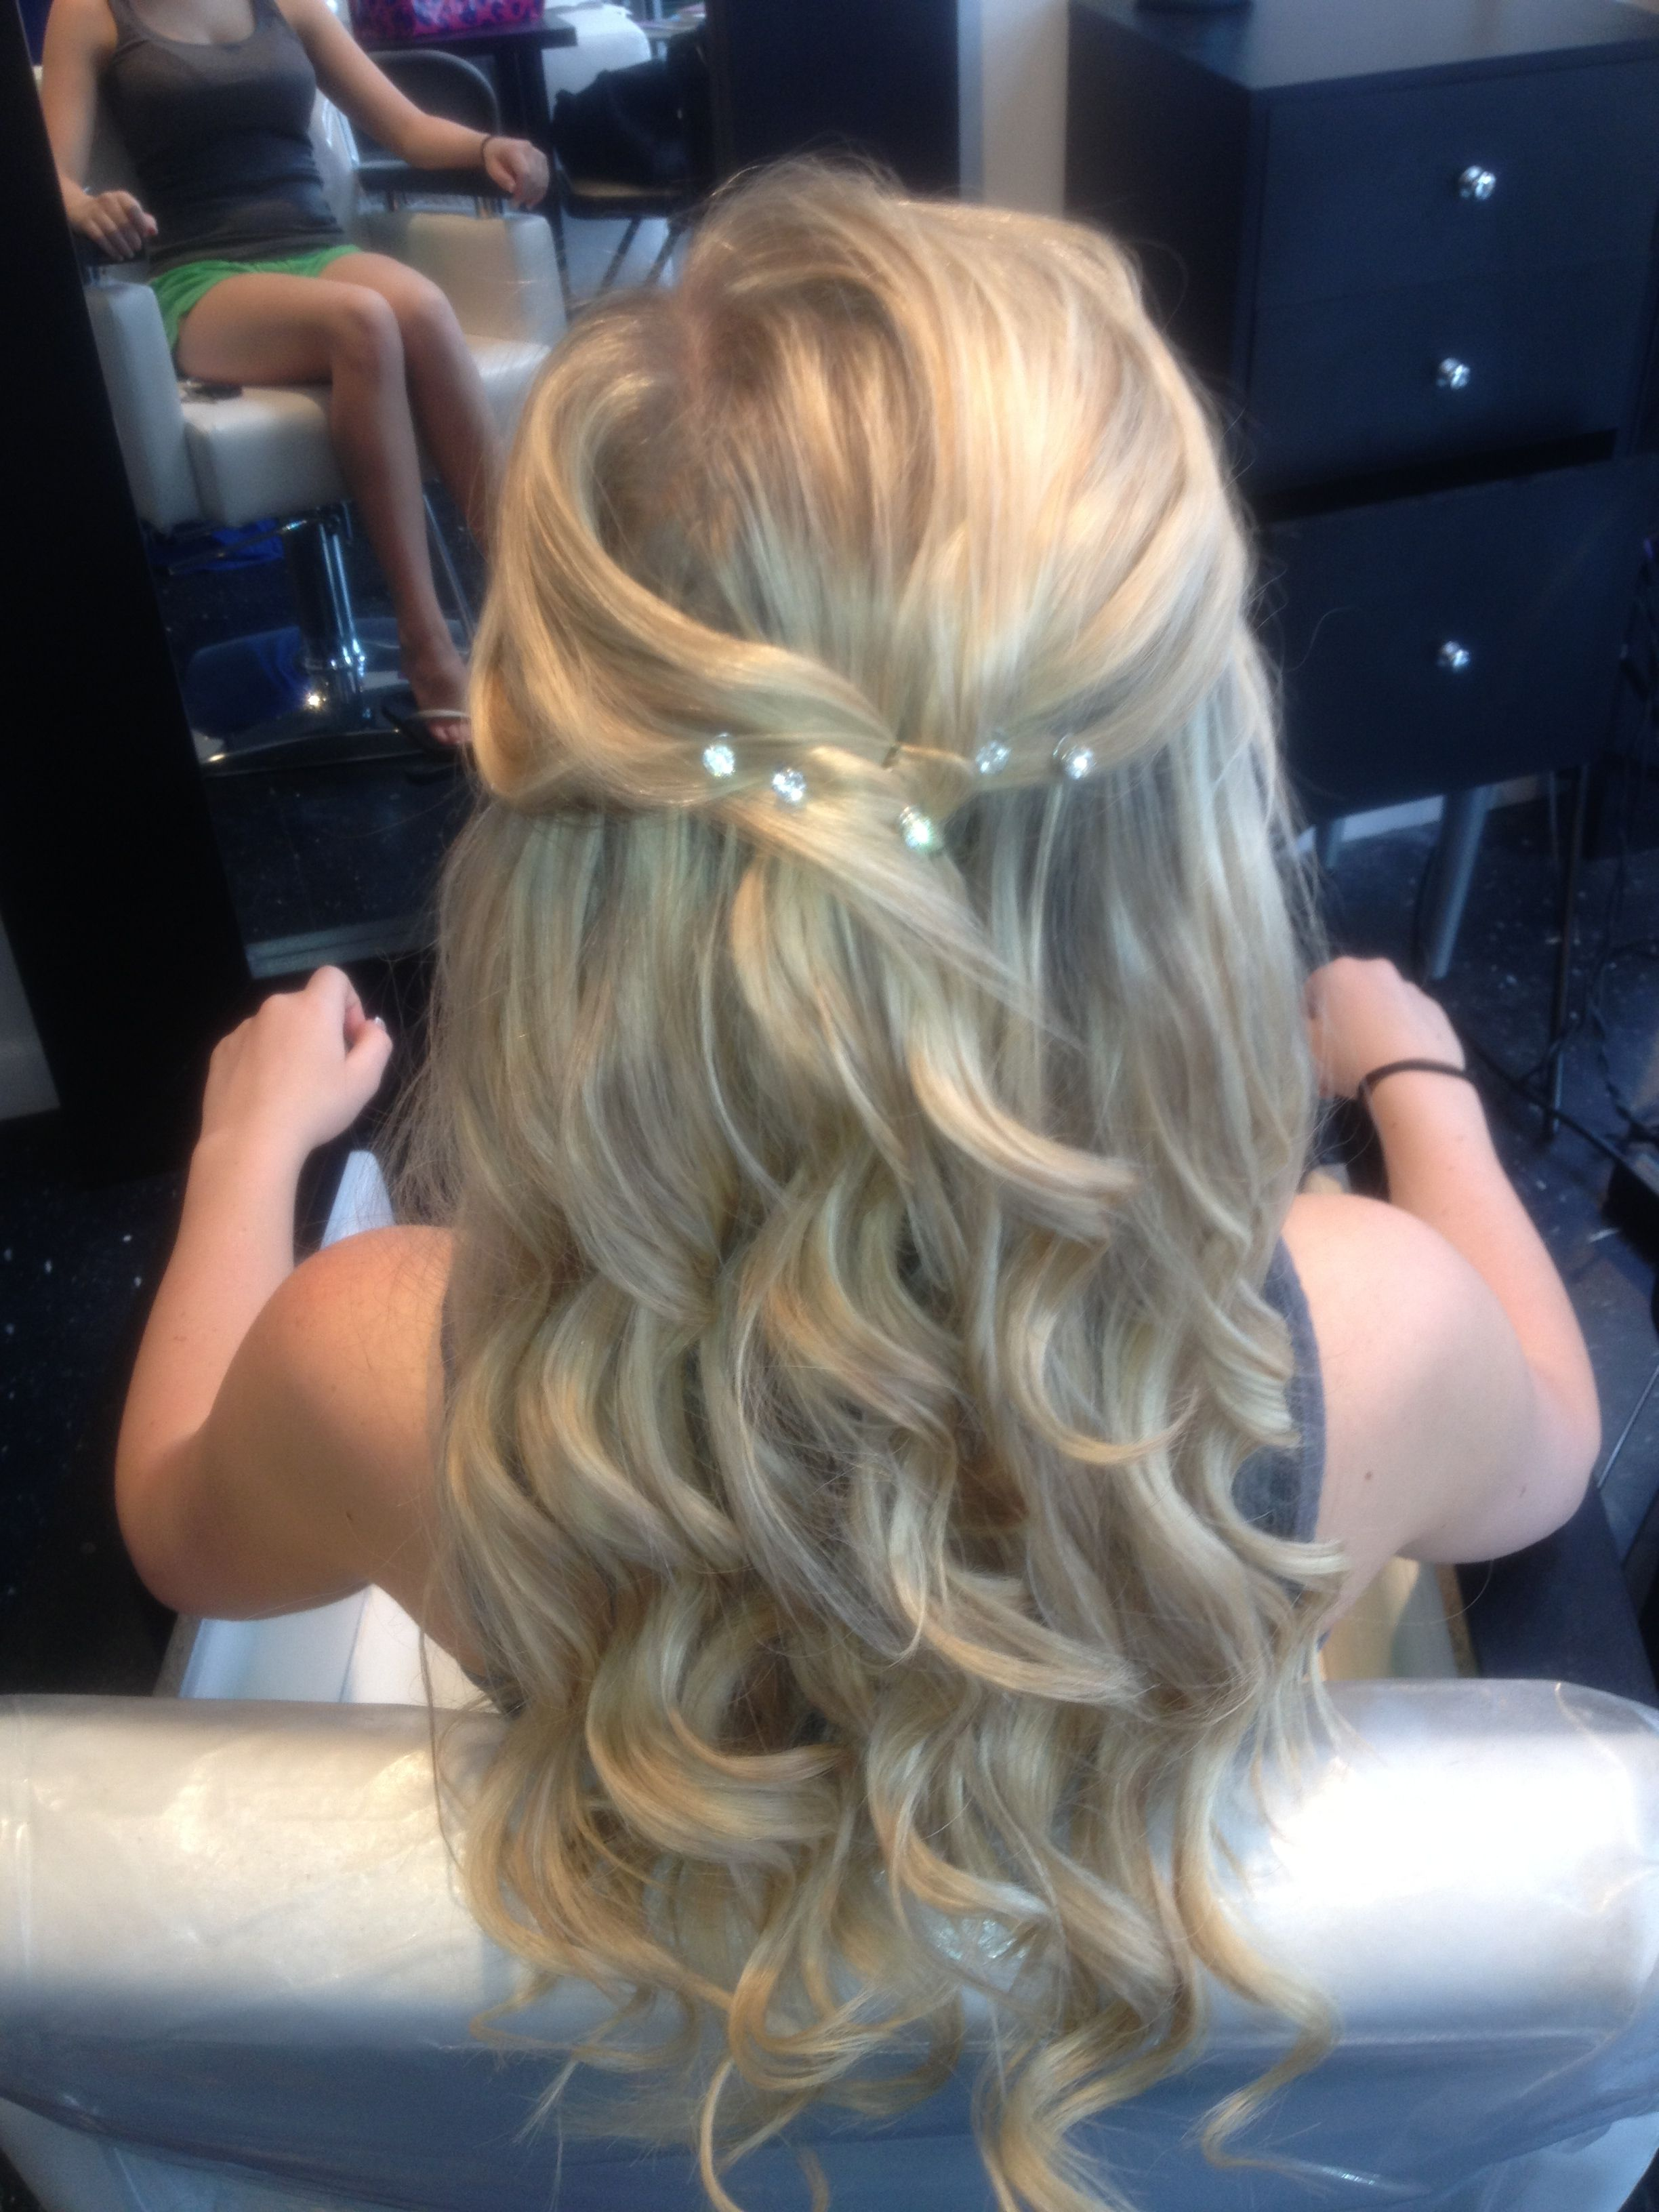 my half up half down curled prom hair with jewels. prom hair